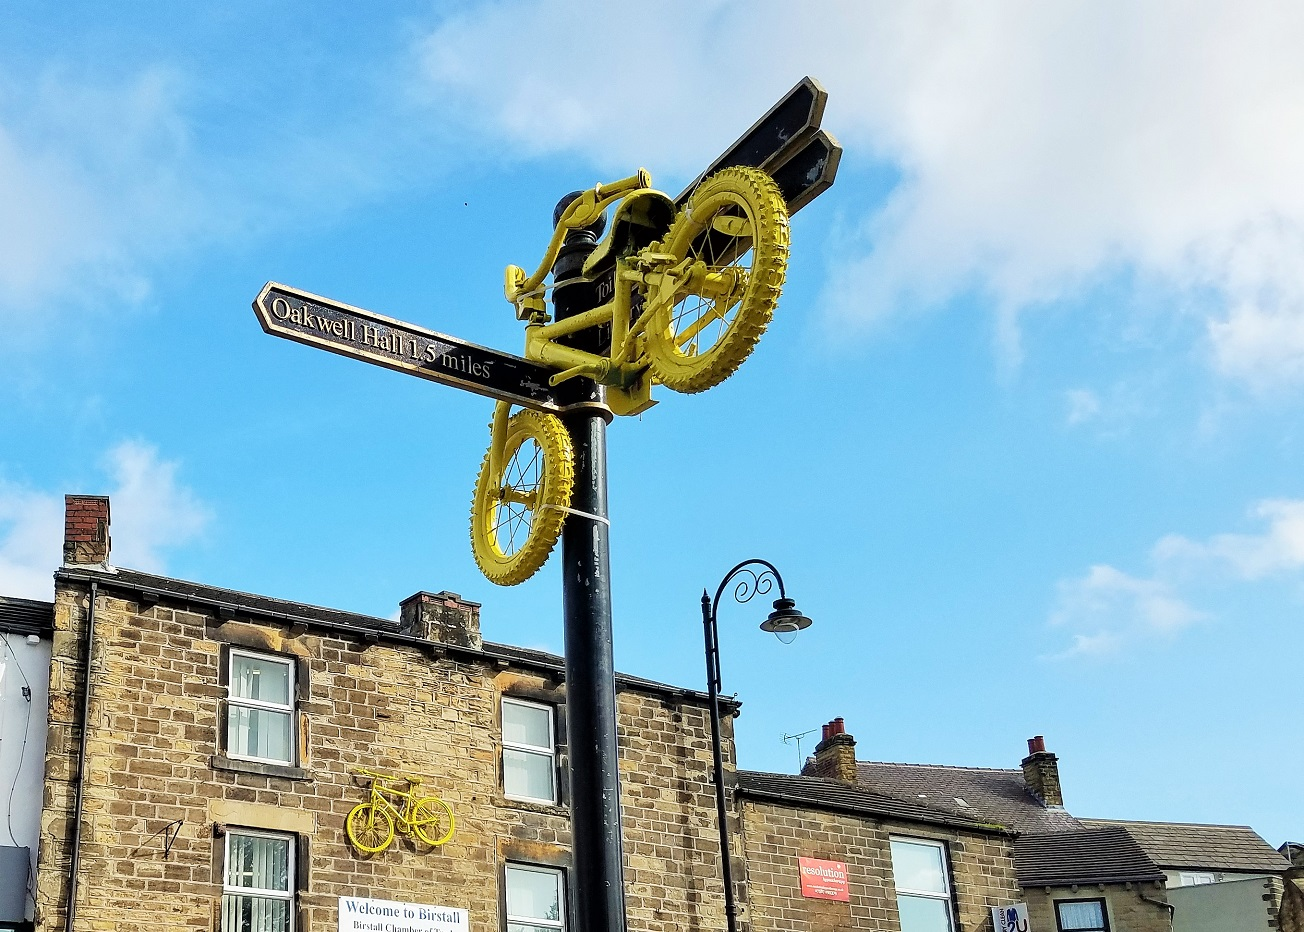 VTech trike yellow bikes in birstall sign post for oakwell hall